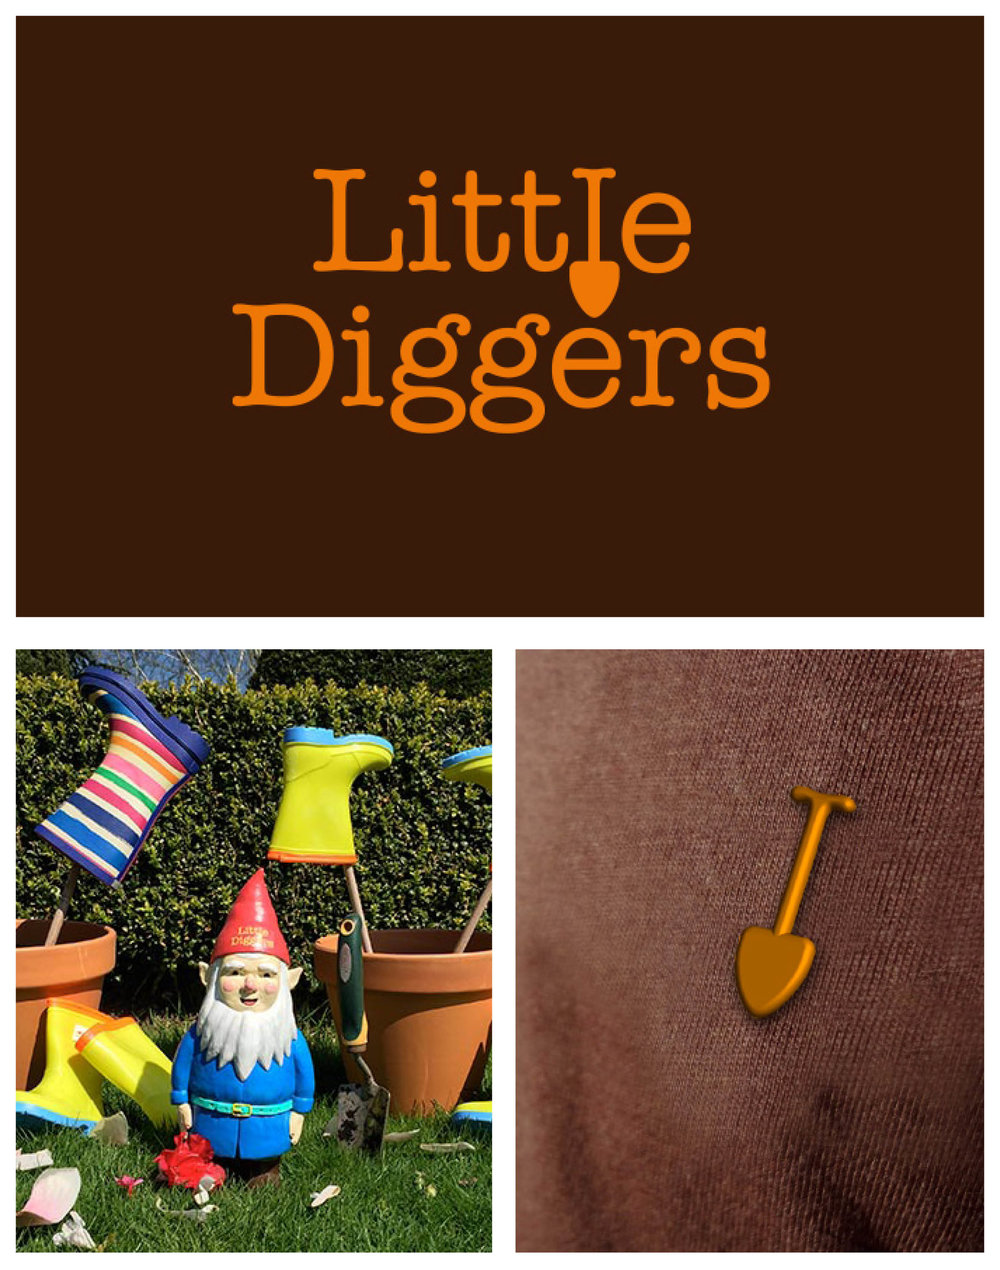 Little-Diggers-Page-Layout.jpg